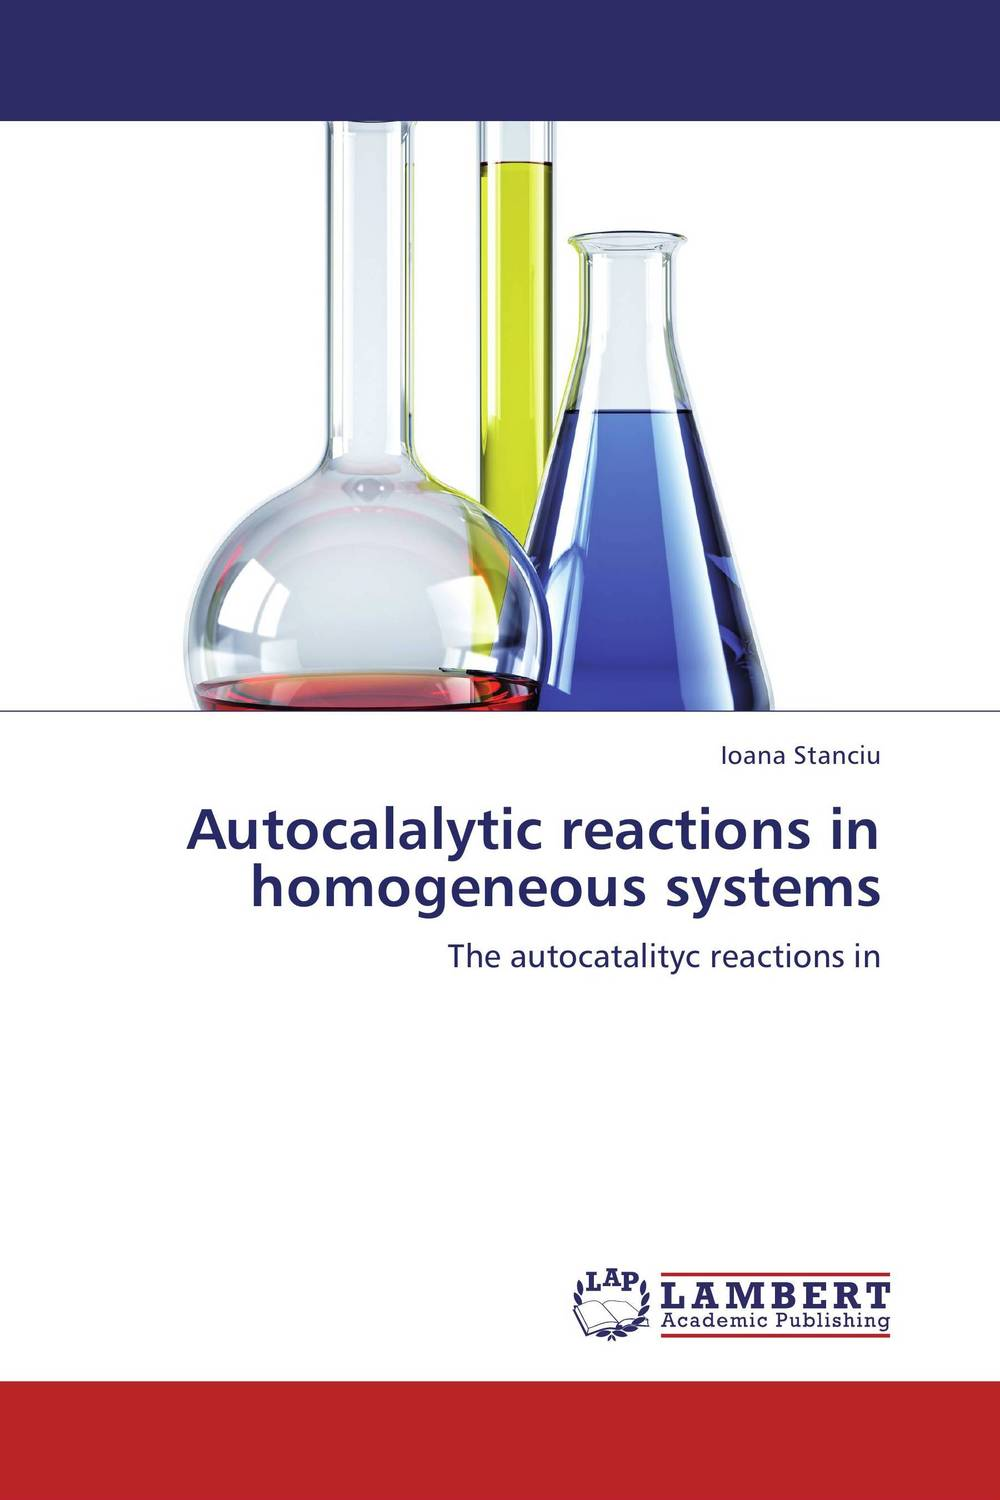 все цены на Autocalalytic reactions in homogeneous systems в интернете